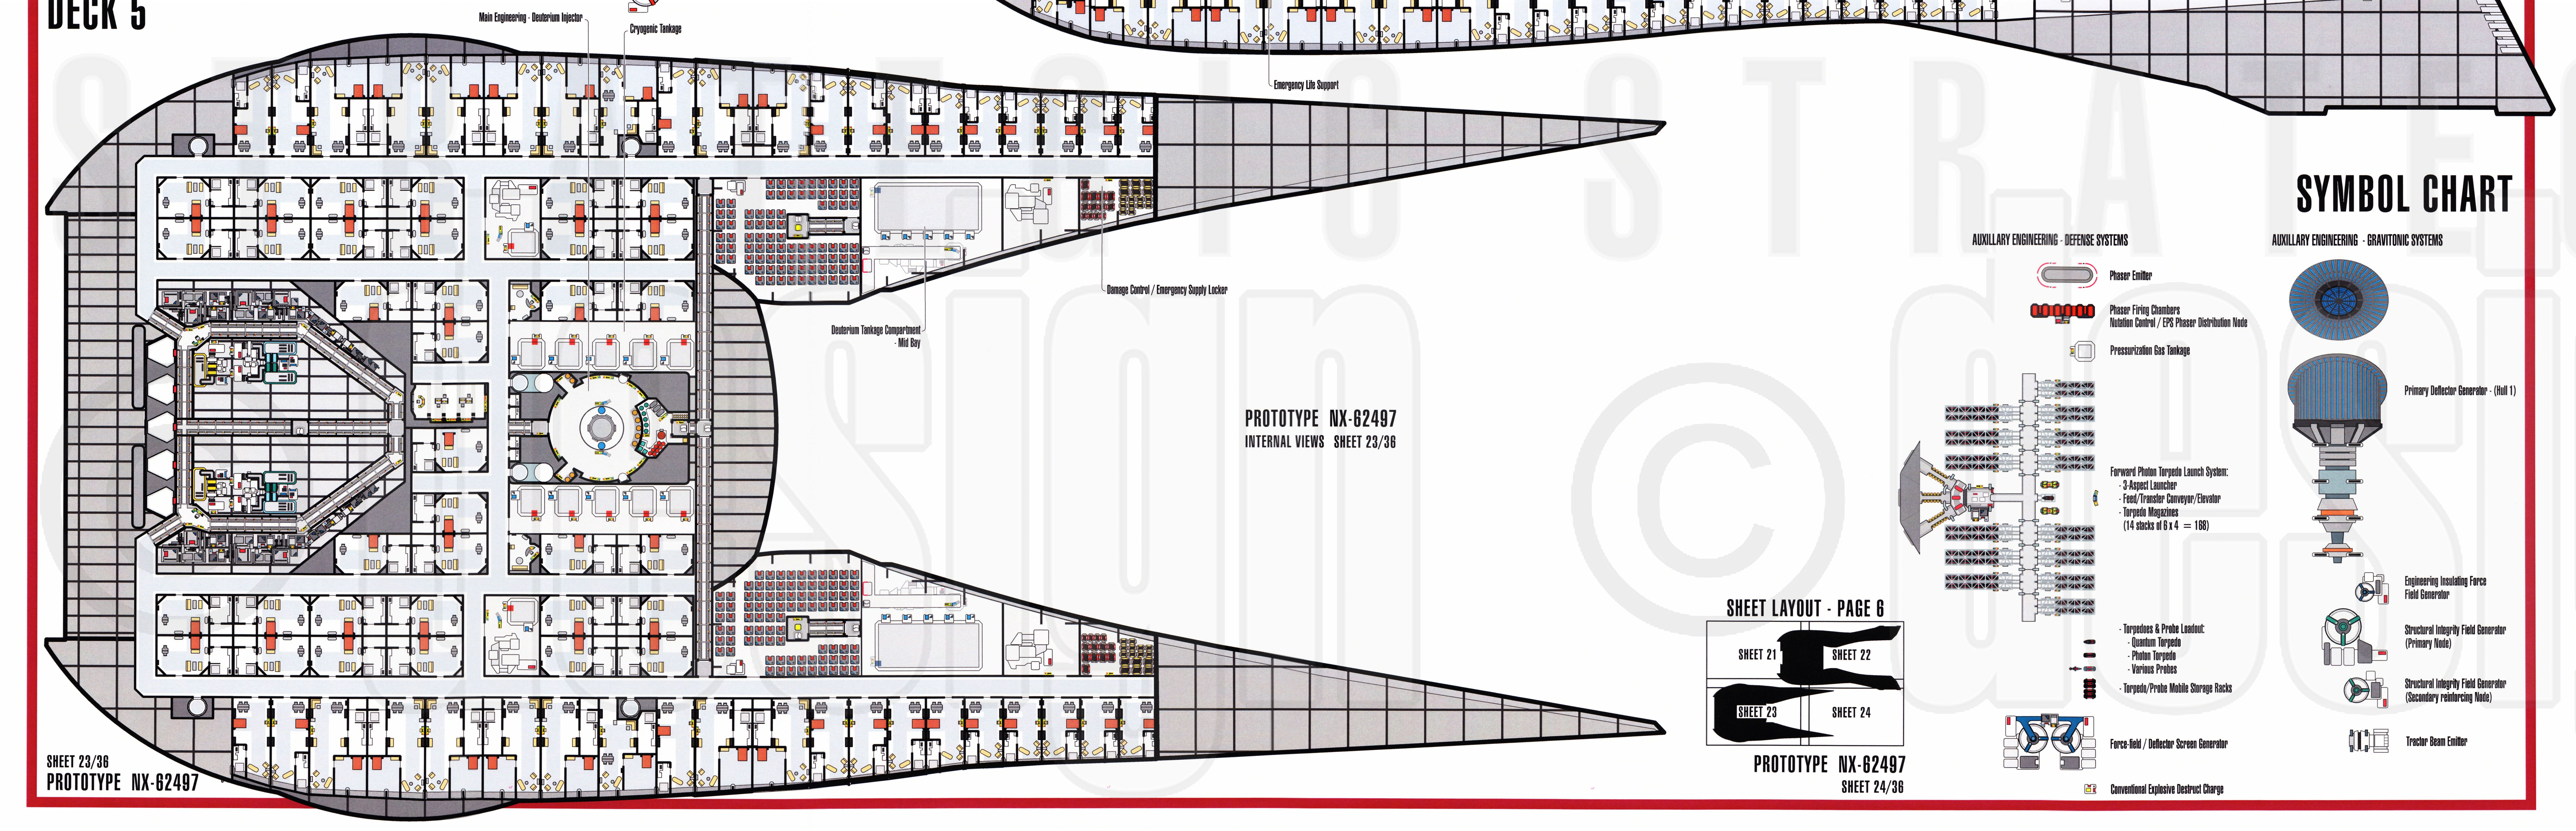 Star trek blueprints u s s akira nx 62497 for Deck blueprints